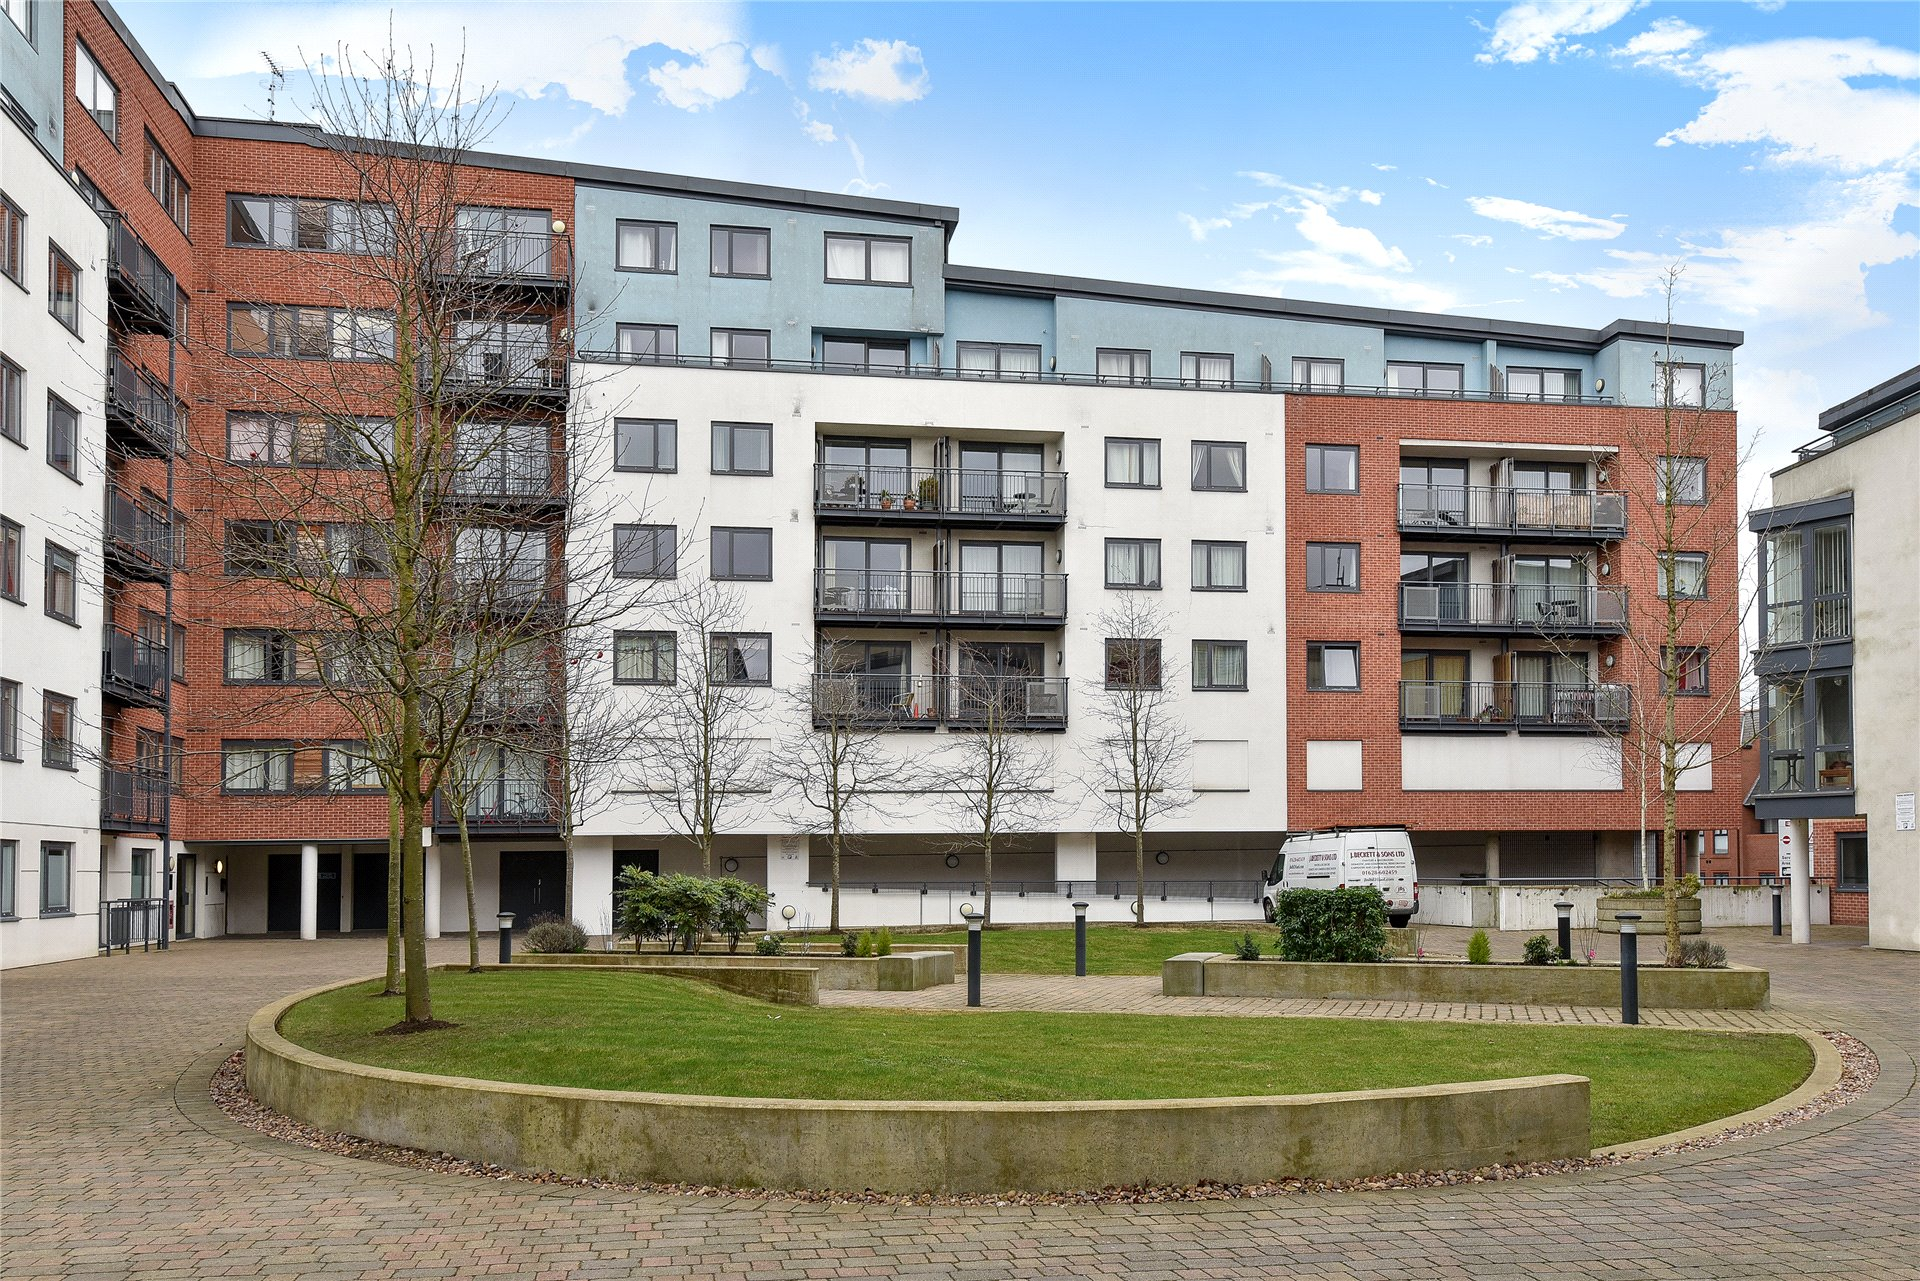 2 Bedrooms Apartment Flat for sale in The Courtyard, Southwell Park Road, Camberley, Surrey, GU15